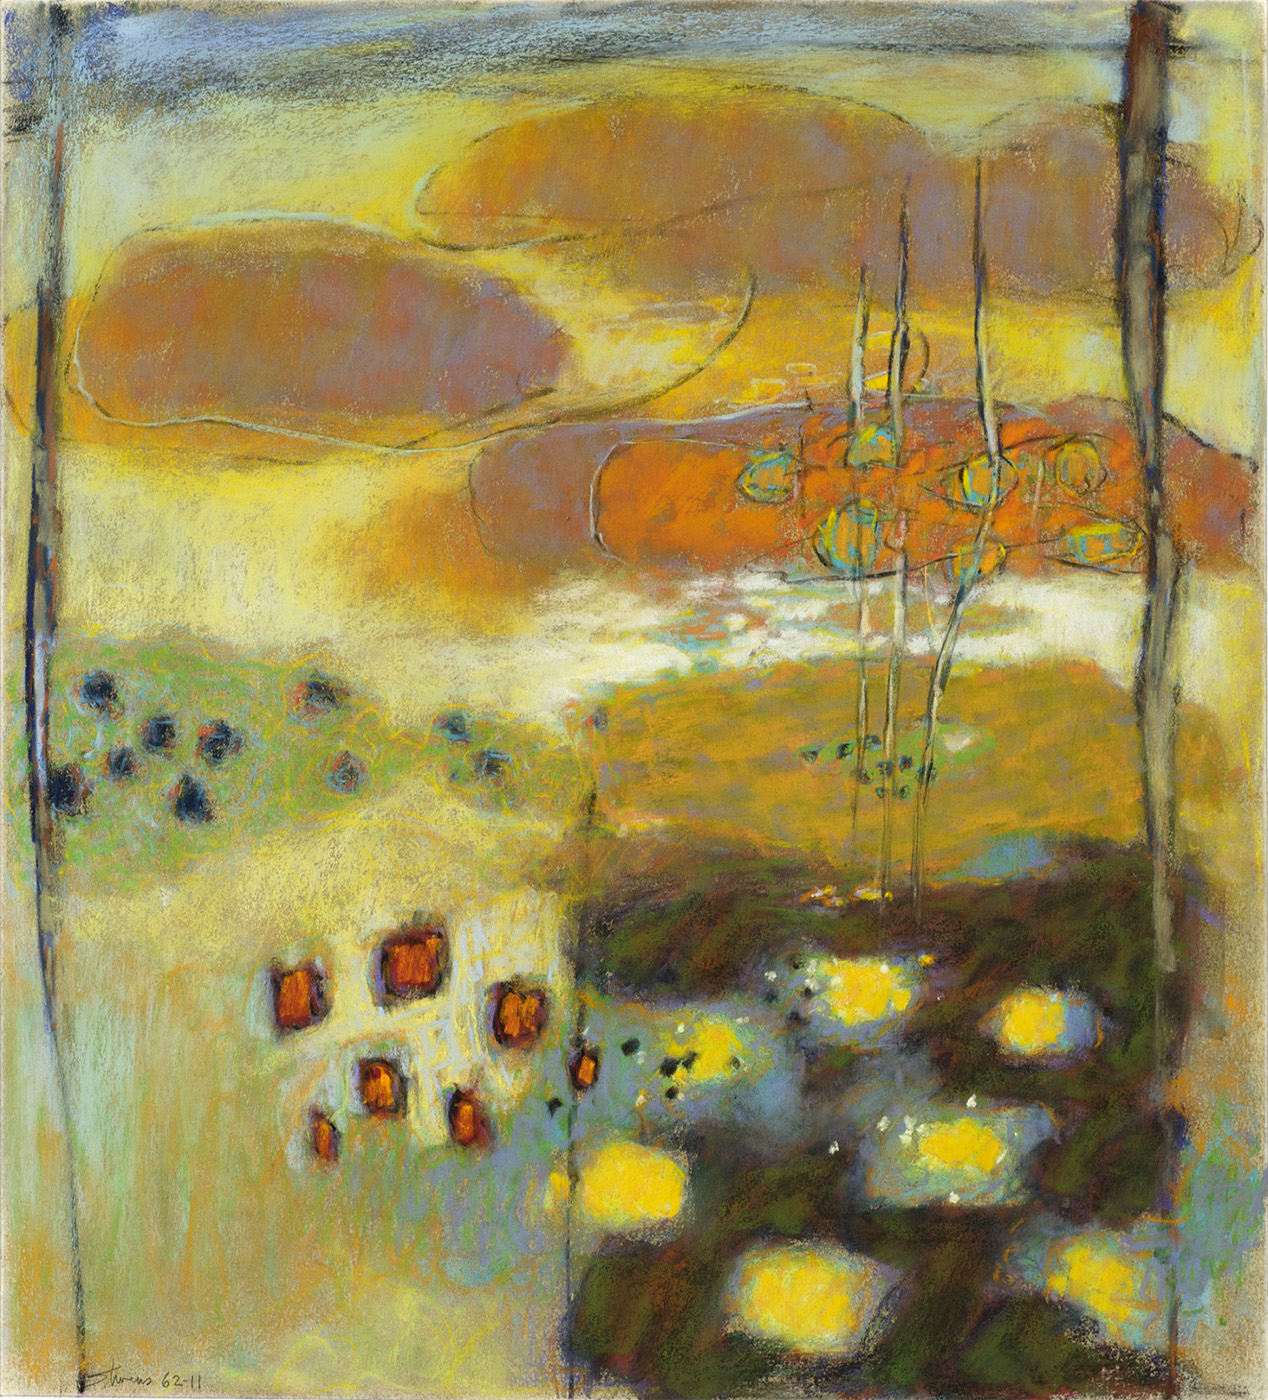 Between Worlds   | pastel on paper | 20 x 18"